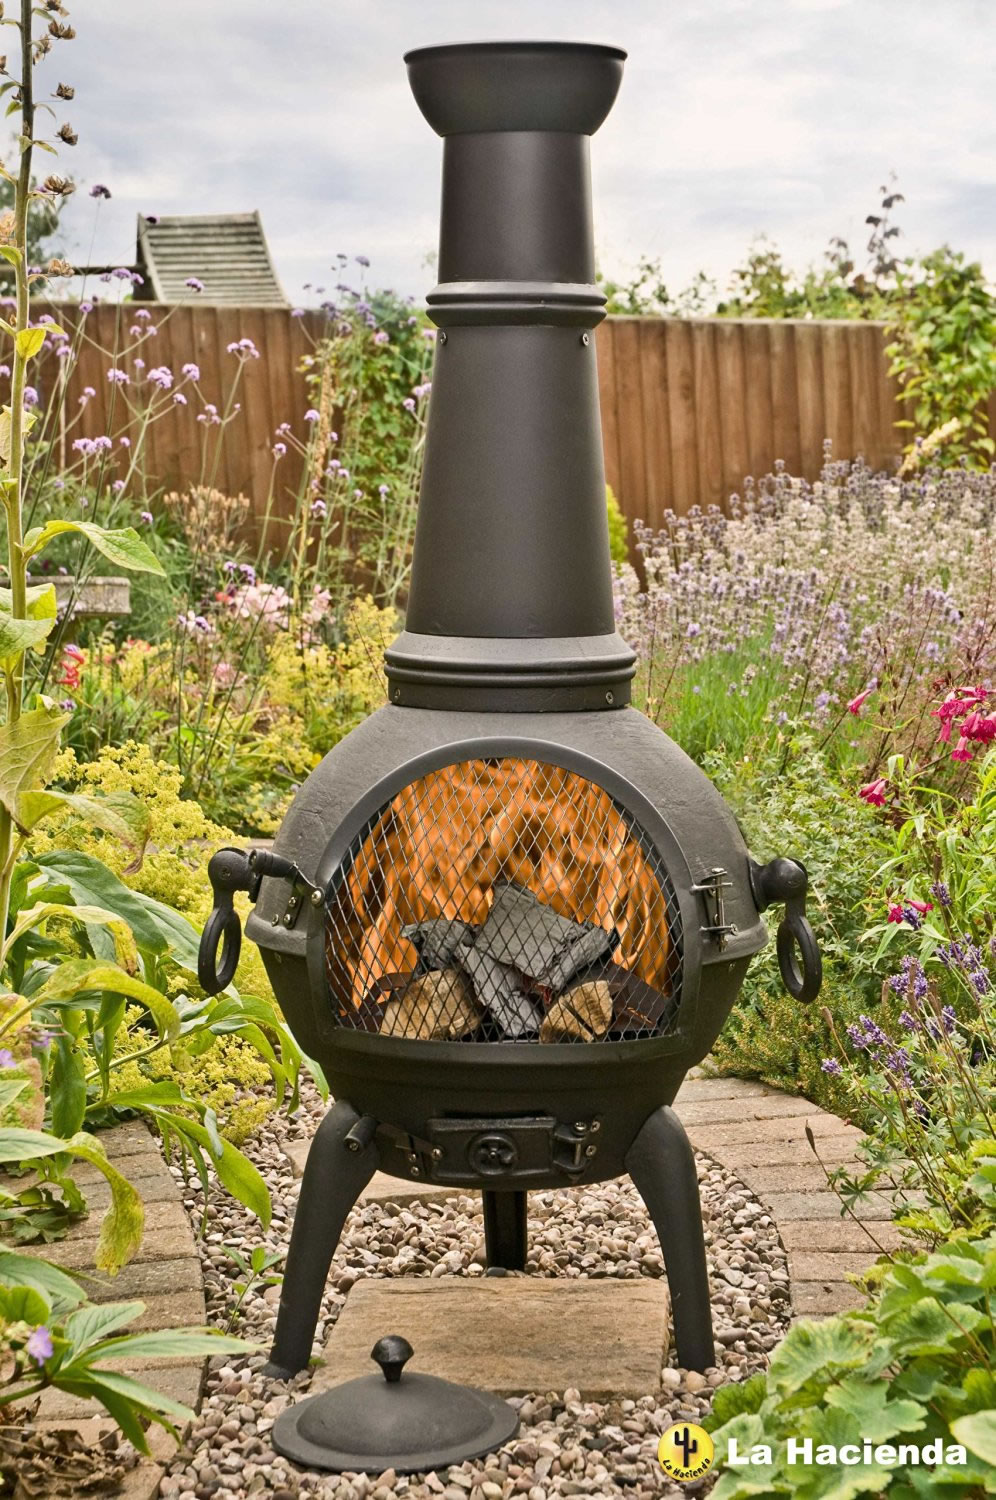 La Hacienda Black Lisbon 125cm Cast Iron Chiminea Chimenea